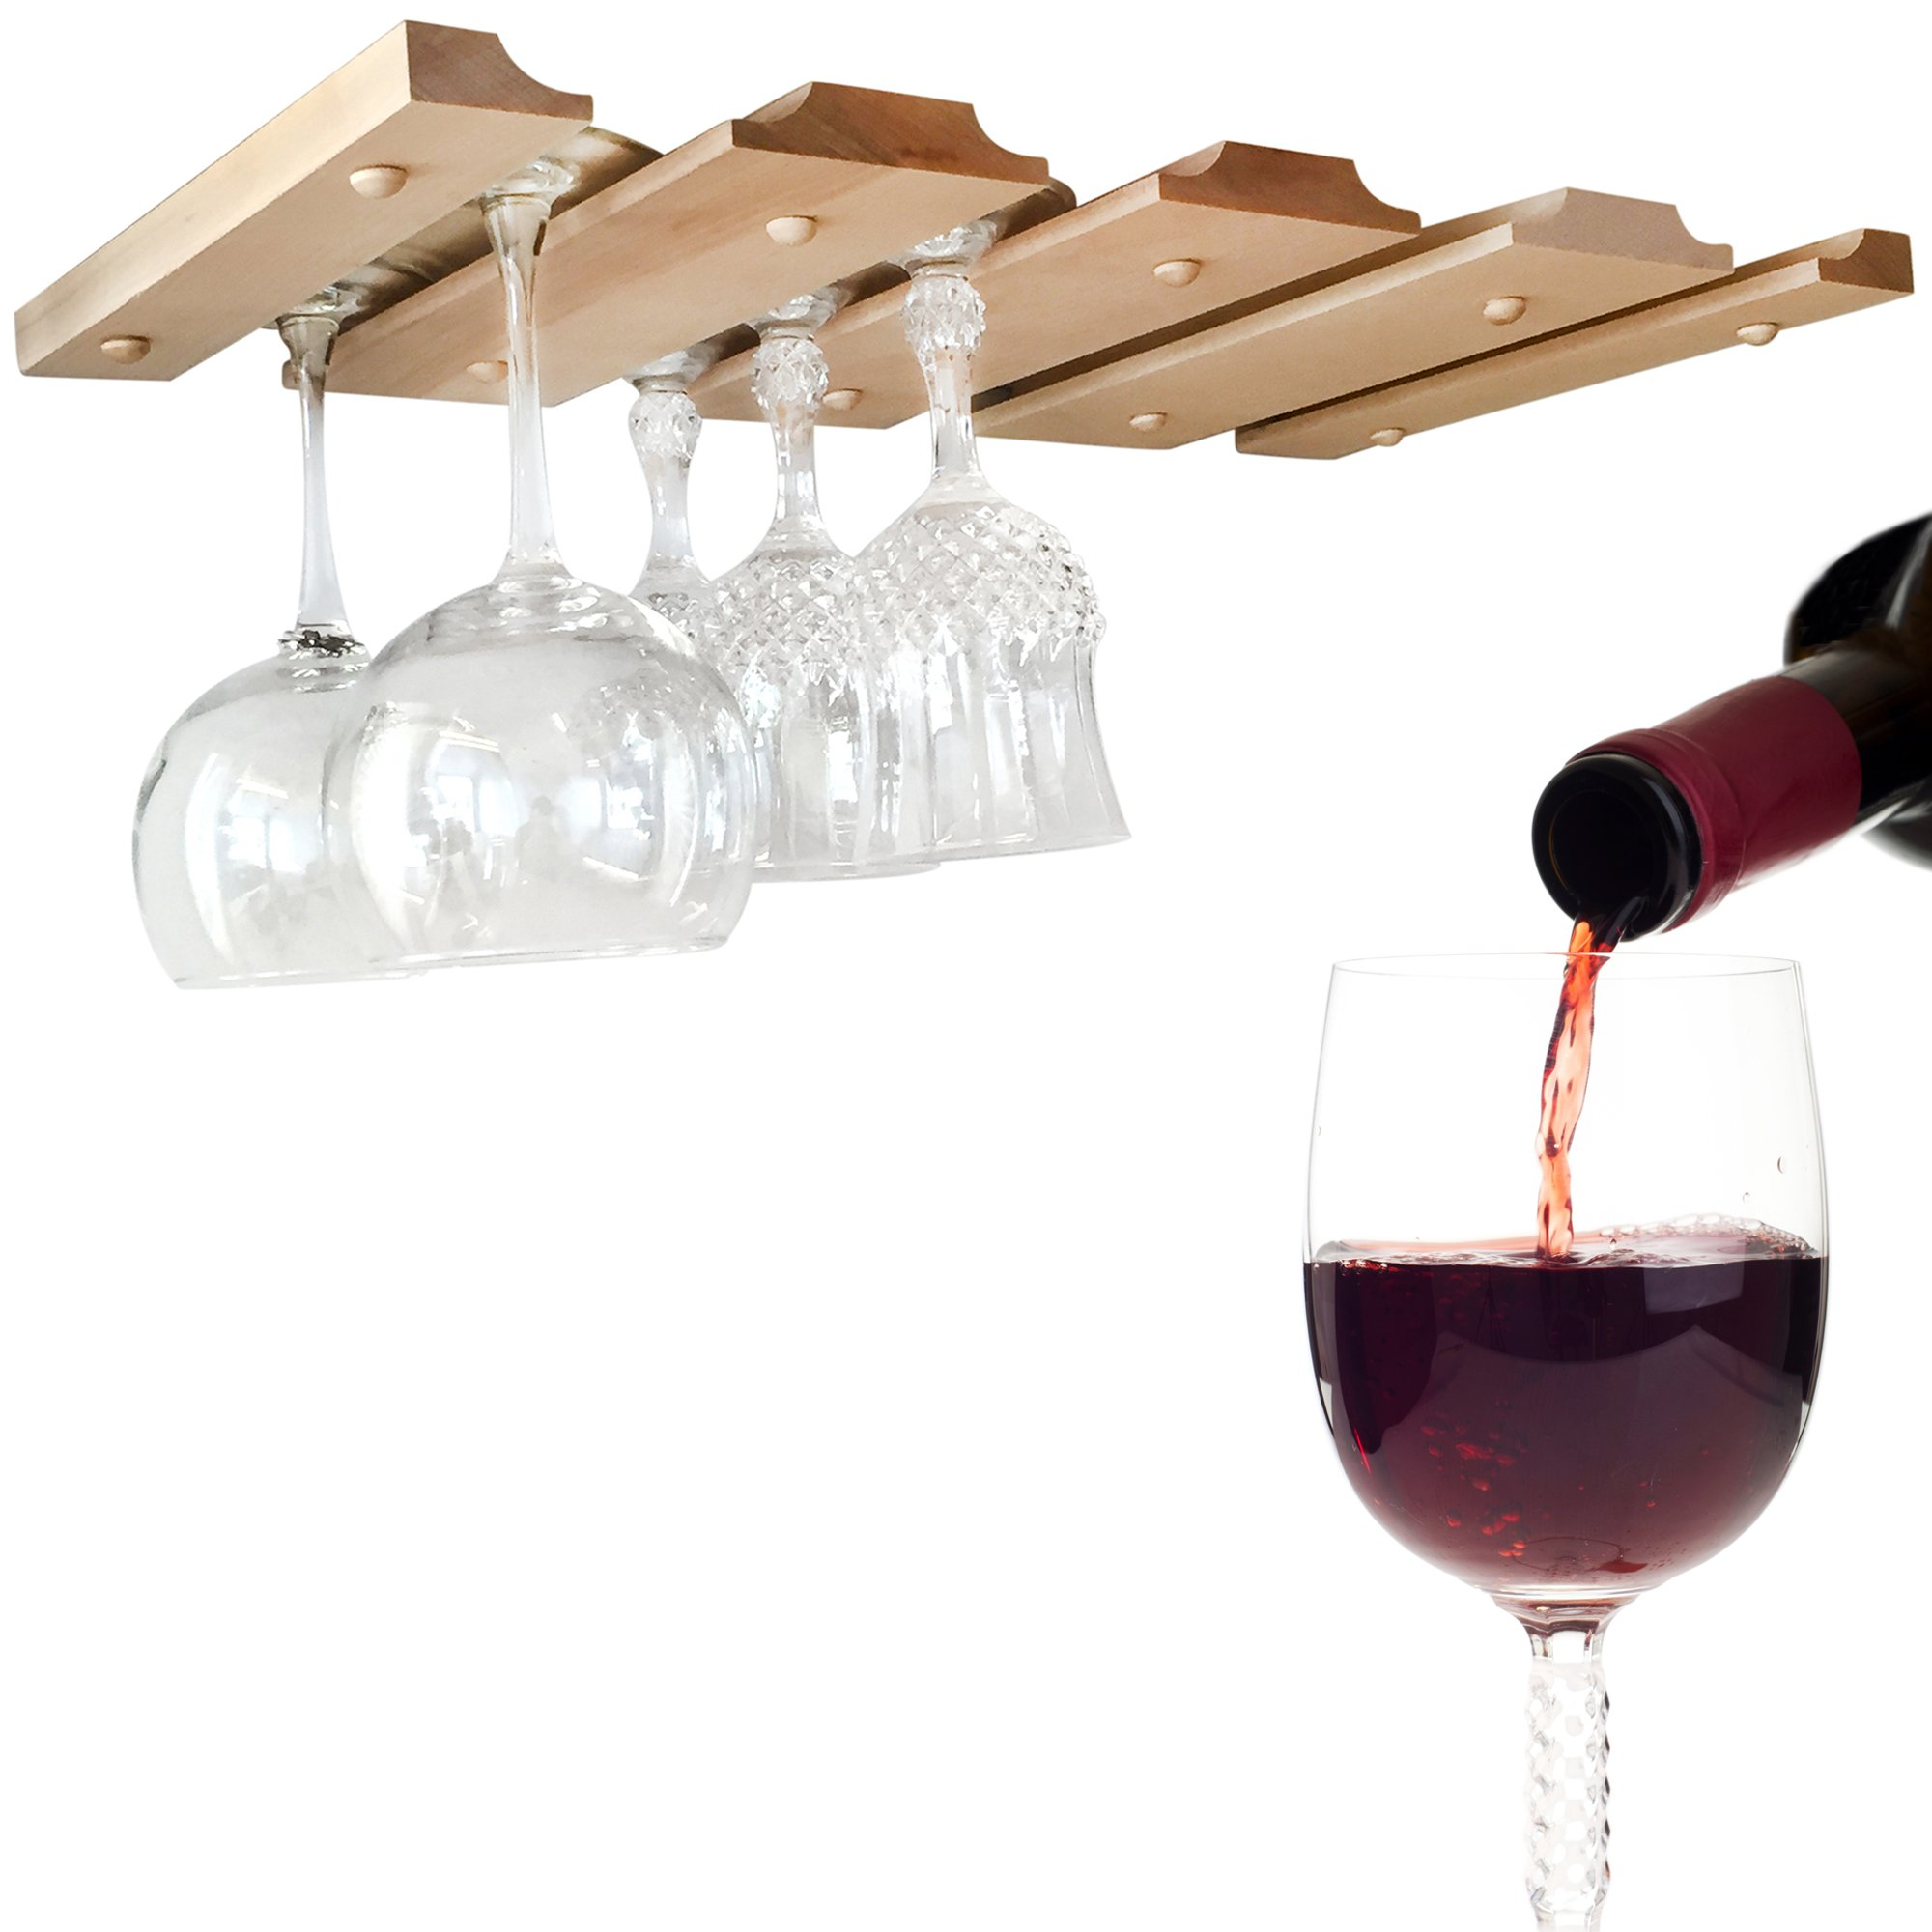 SMITCO Wood Wine Glass Holder Under Cabinet for Hanging Stemware Storage -Unfinished Wood Glass Rack to Organize 12 Glasses (Double) - 11 Inches Deep x 20 Inches Wide - Made in The USA by SMITCO